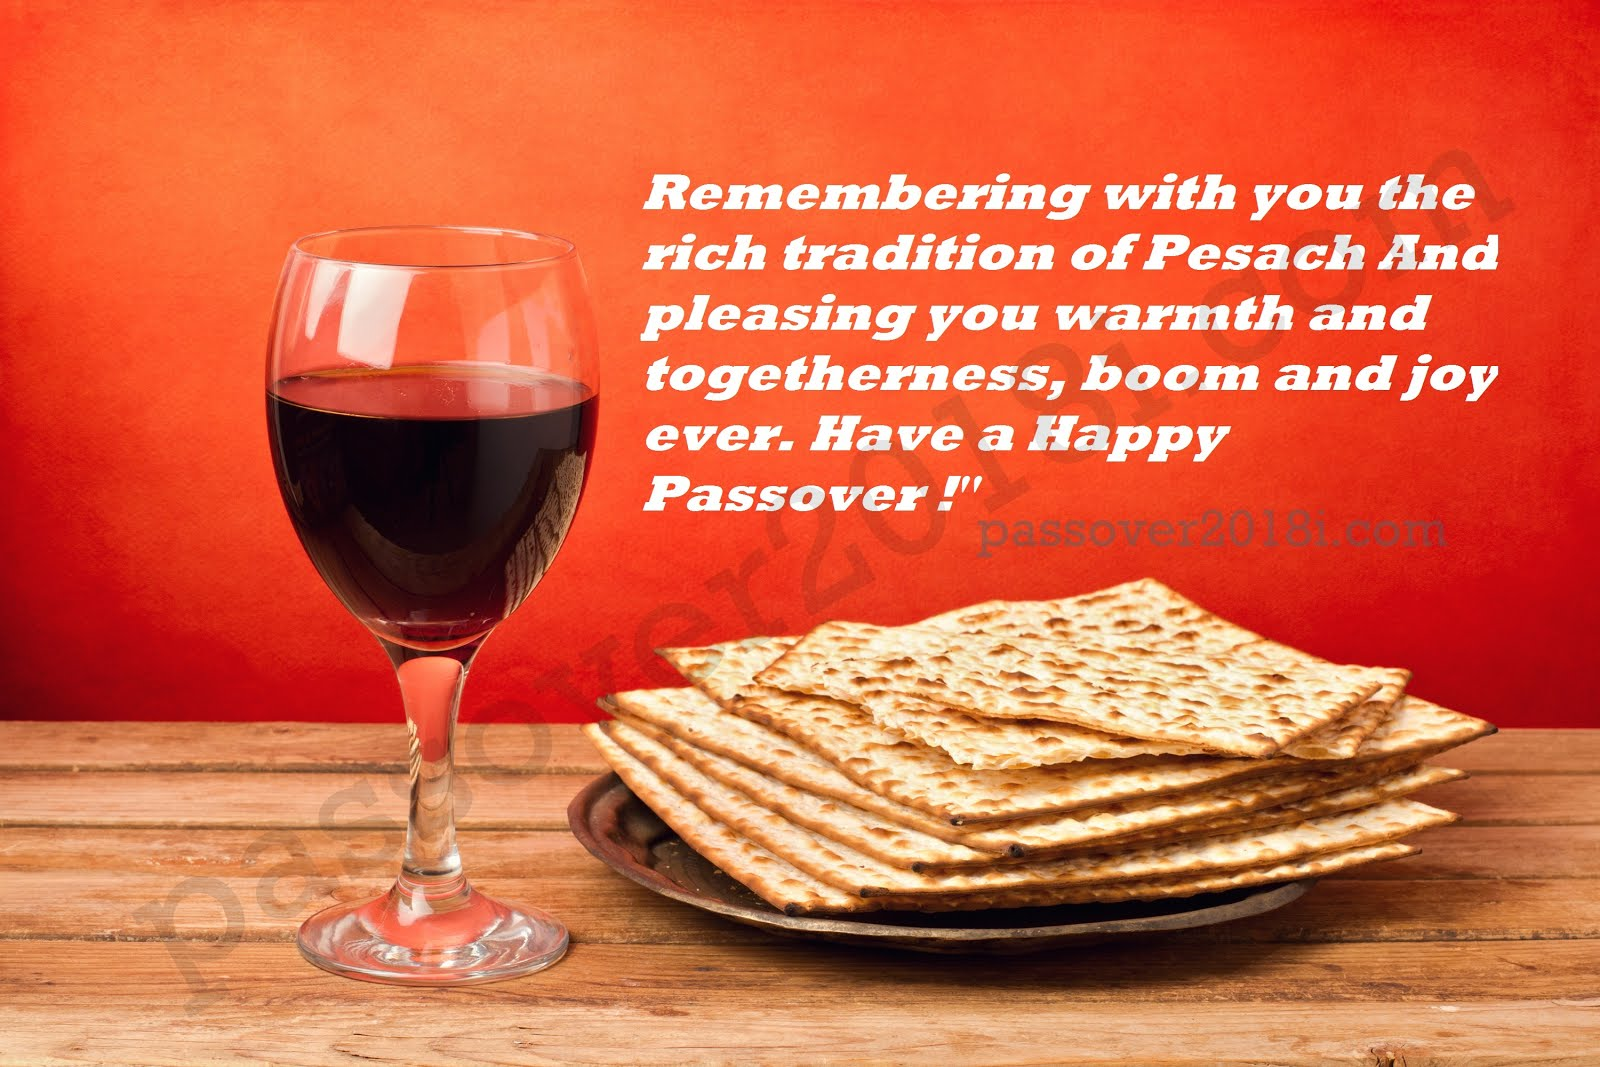 Happy Passover Greetings Cards Wishes Messages Quotes For Facebook